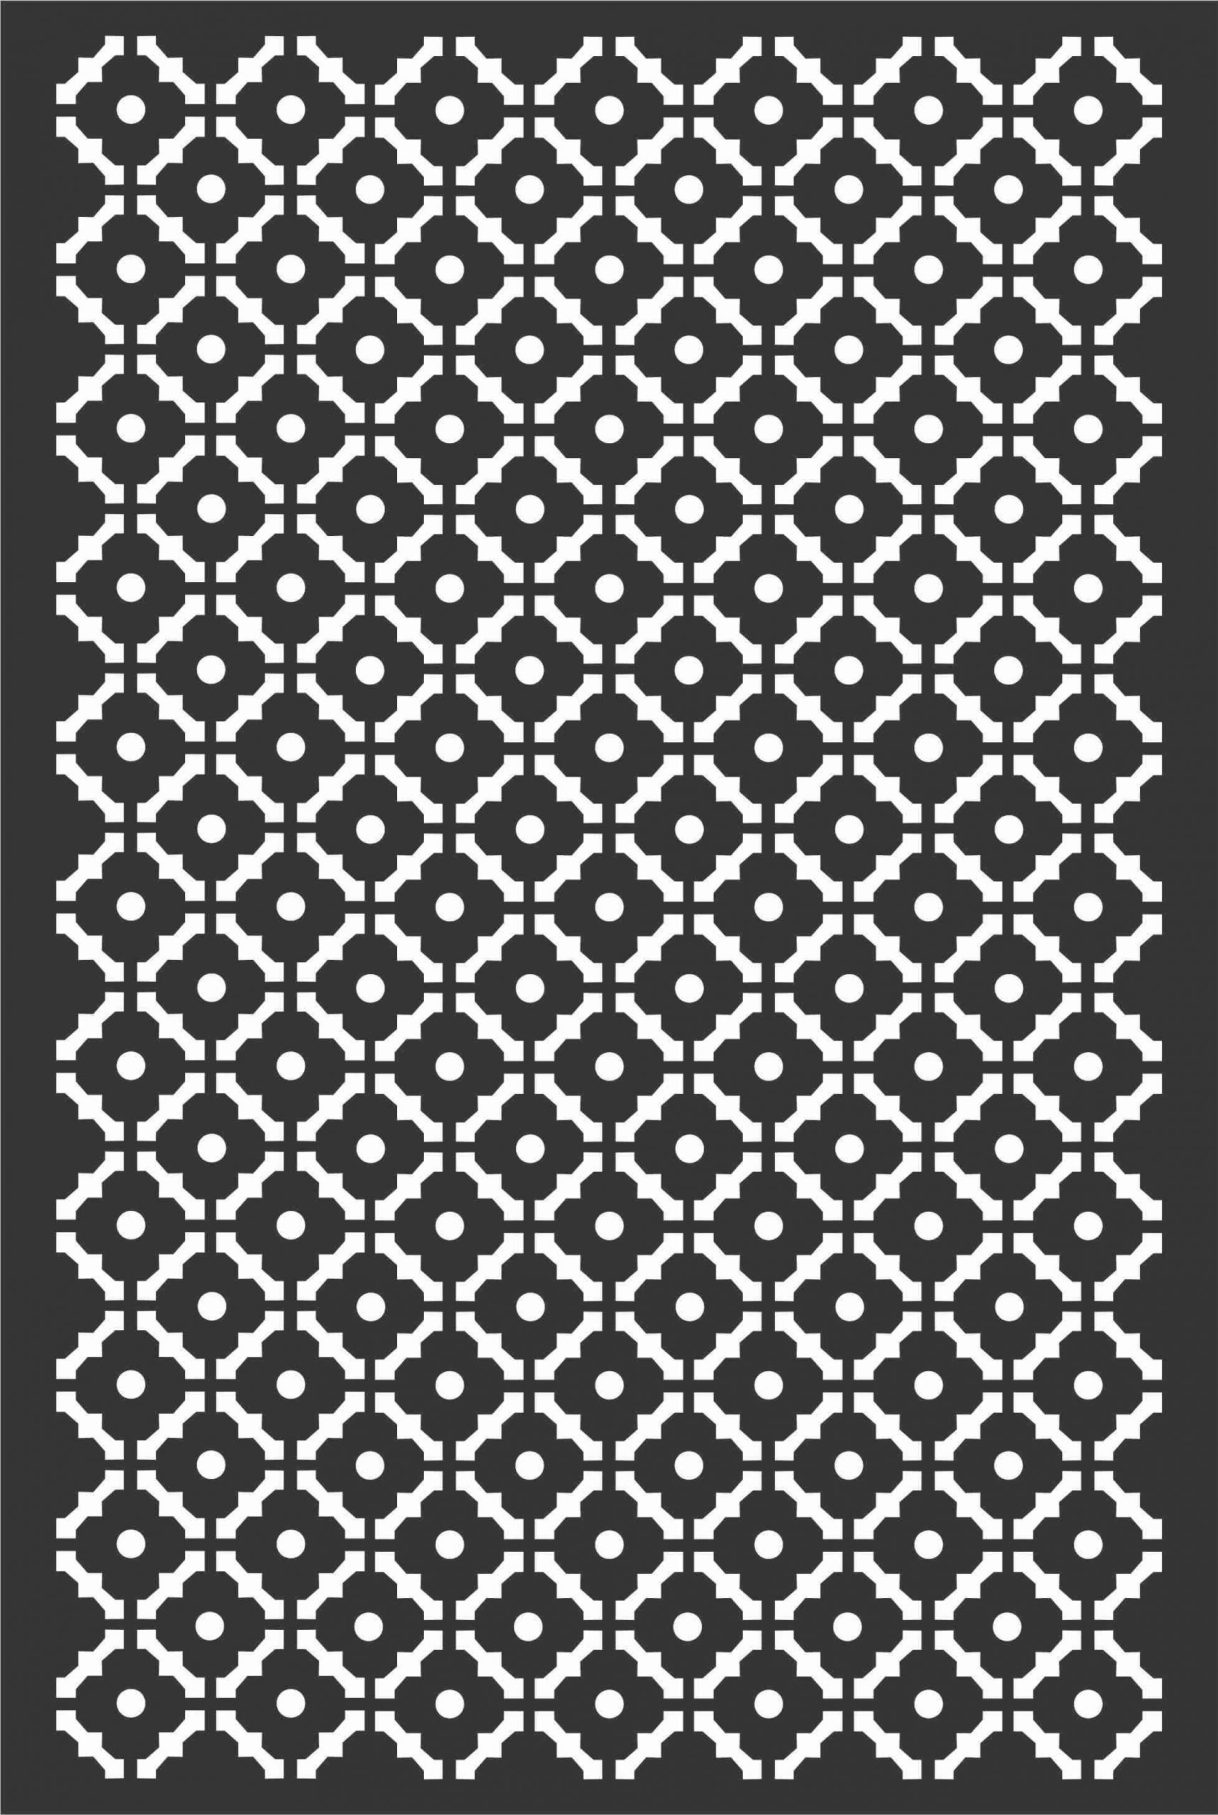 Floral Screen Patterns Design 69 Free DXF File